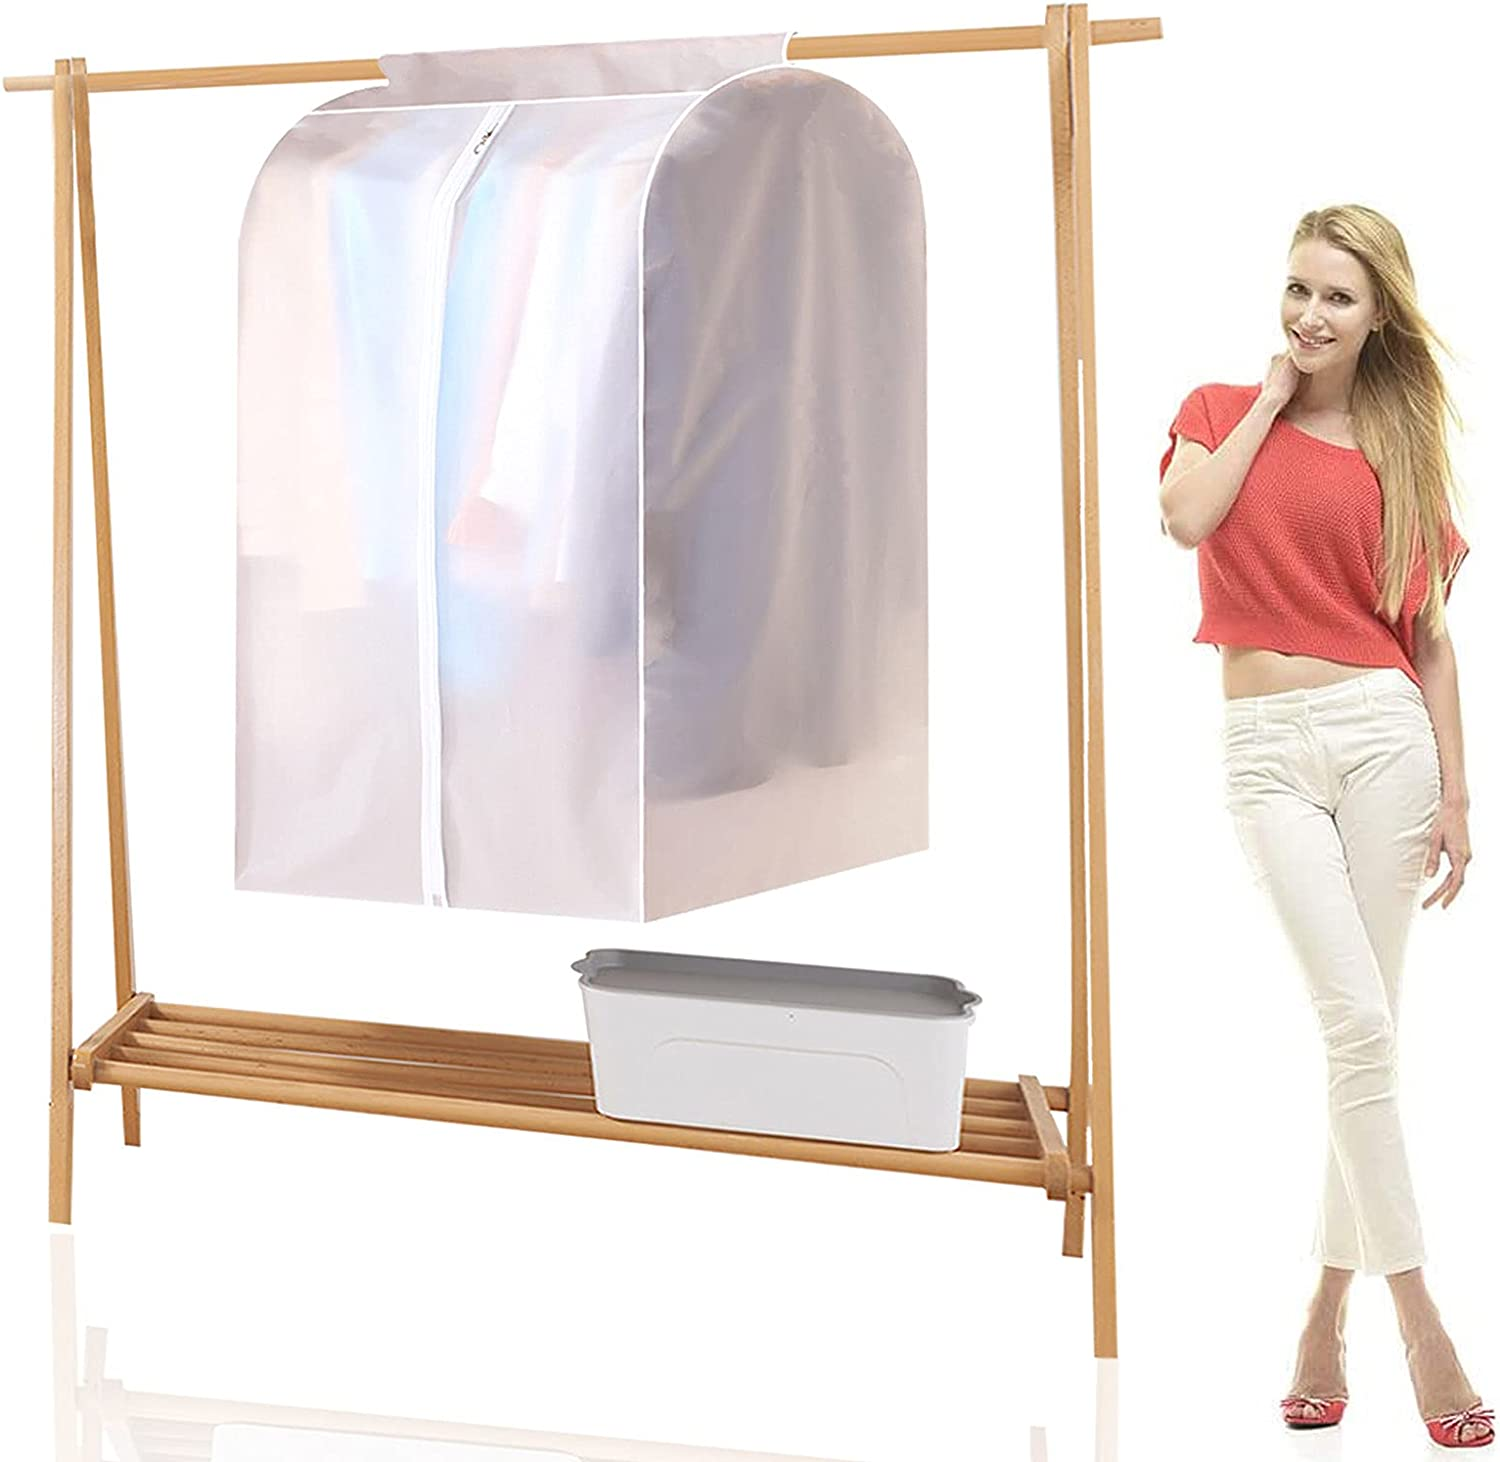 XIAOKUBB Hanging Garment Bags Translucent Breathable New products, world's highest quality popular! Rac Cheap sale